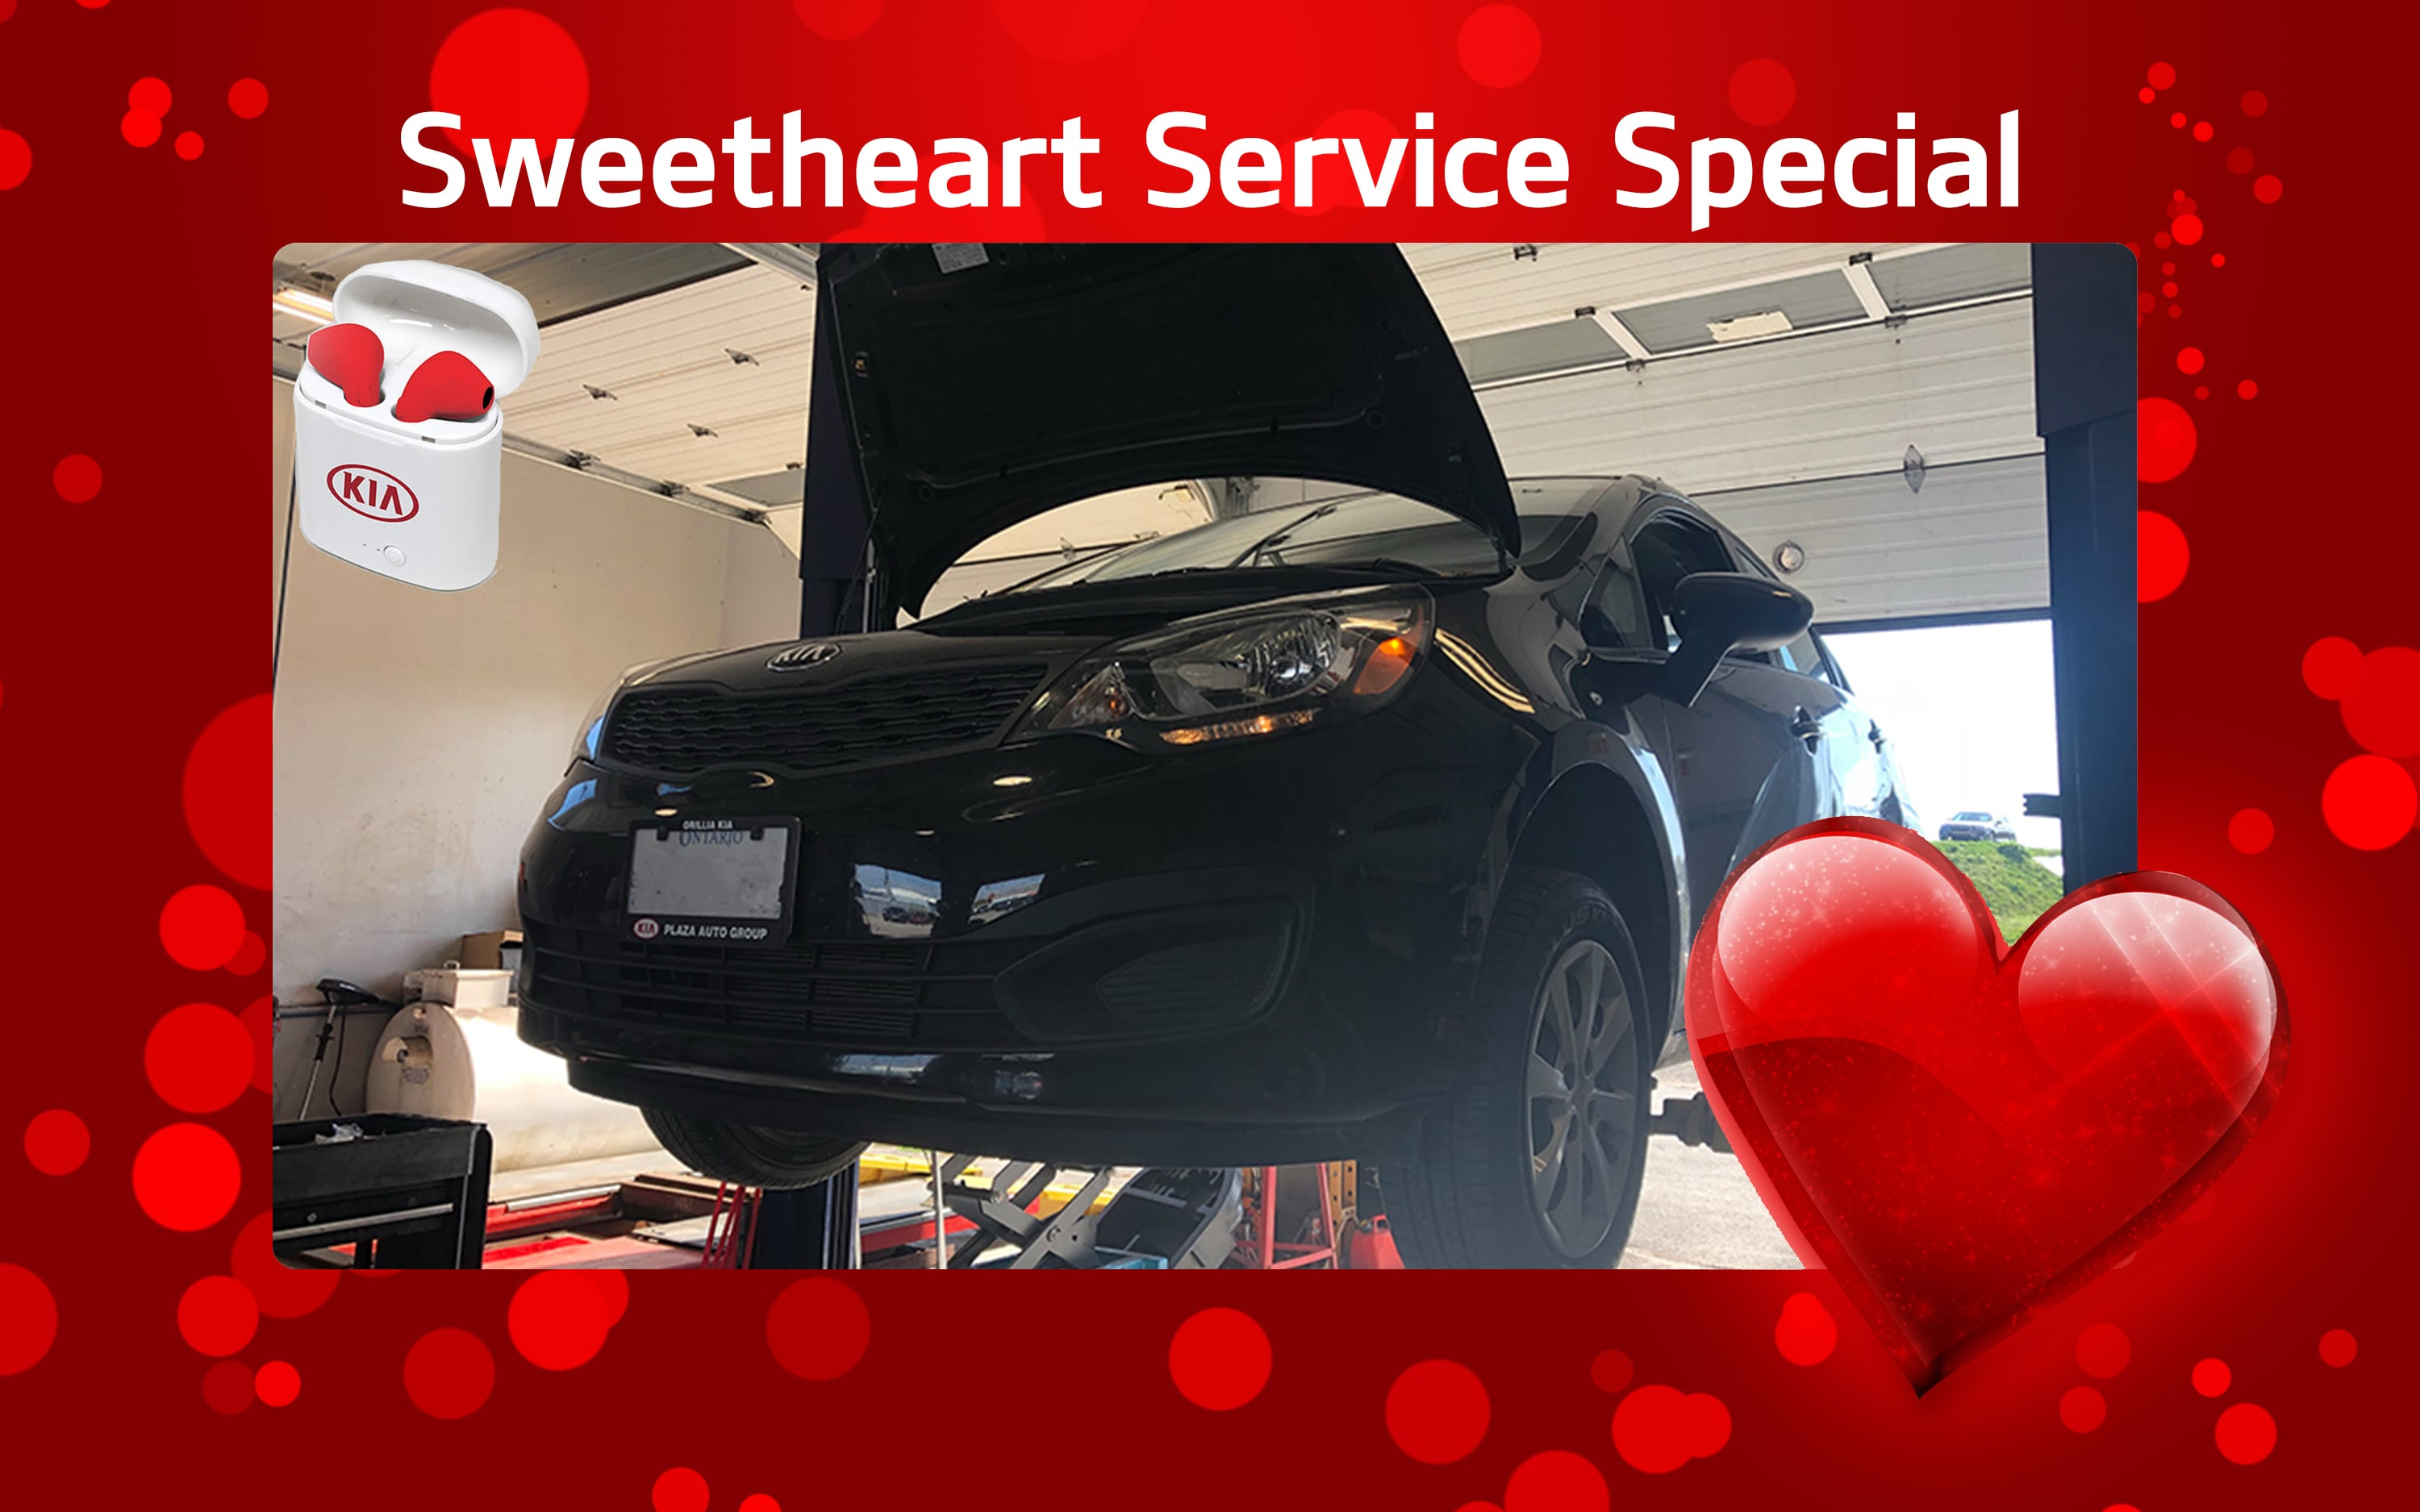 Sweetheart Service Special